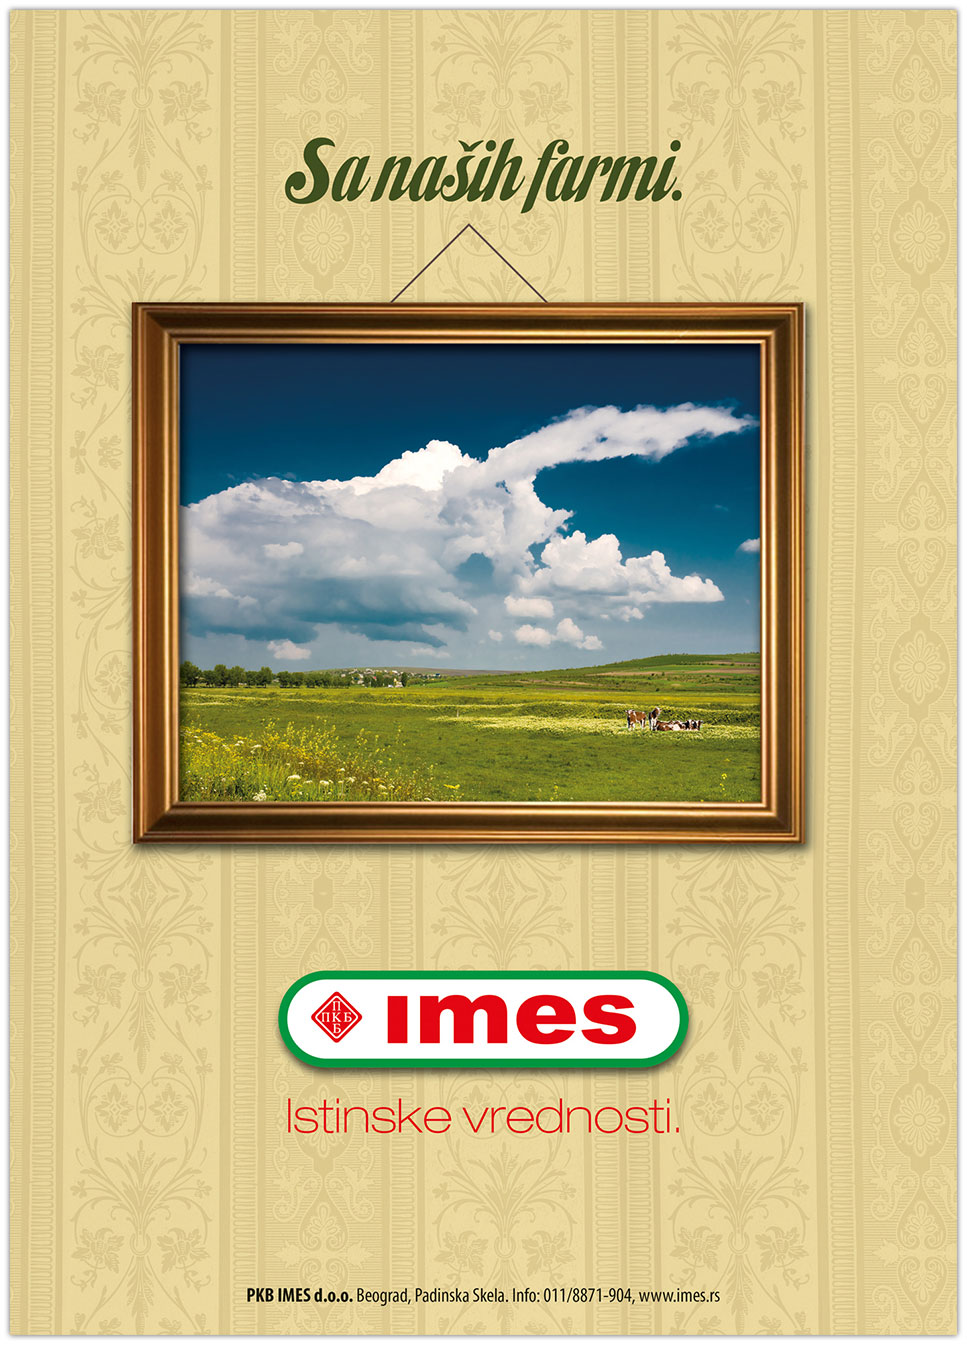 imes poster 1